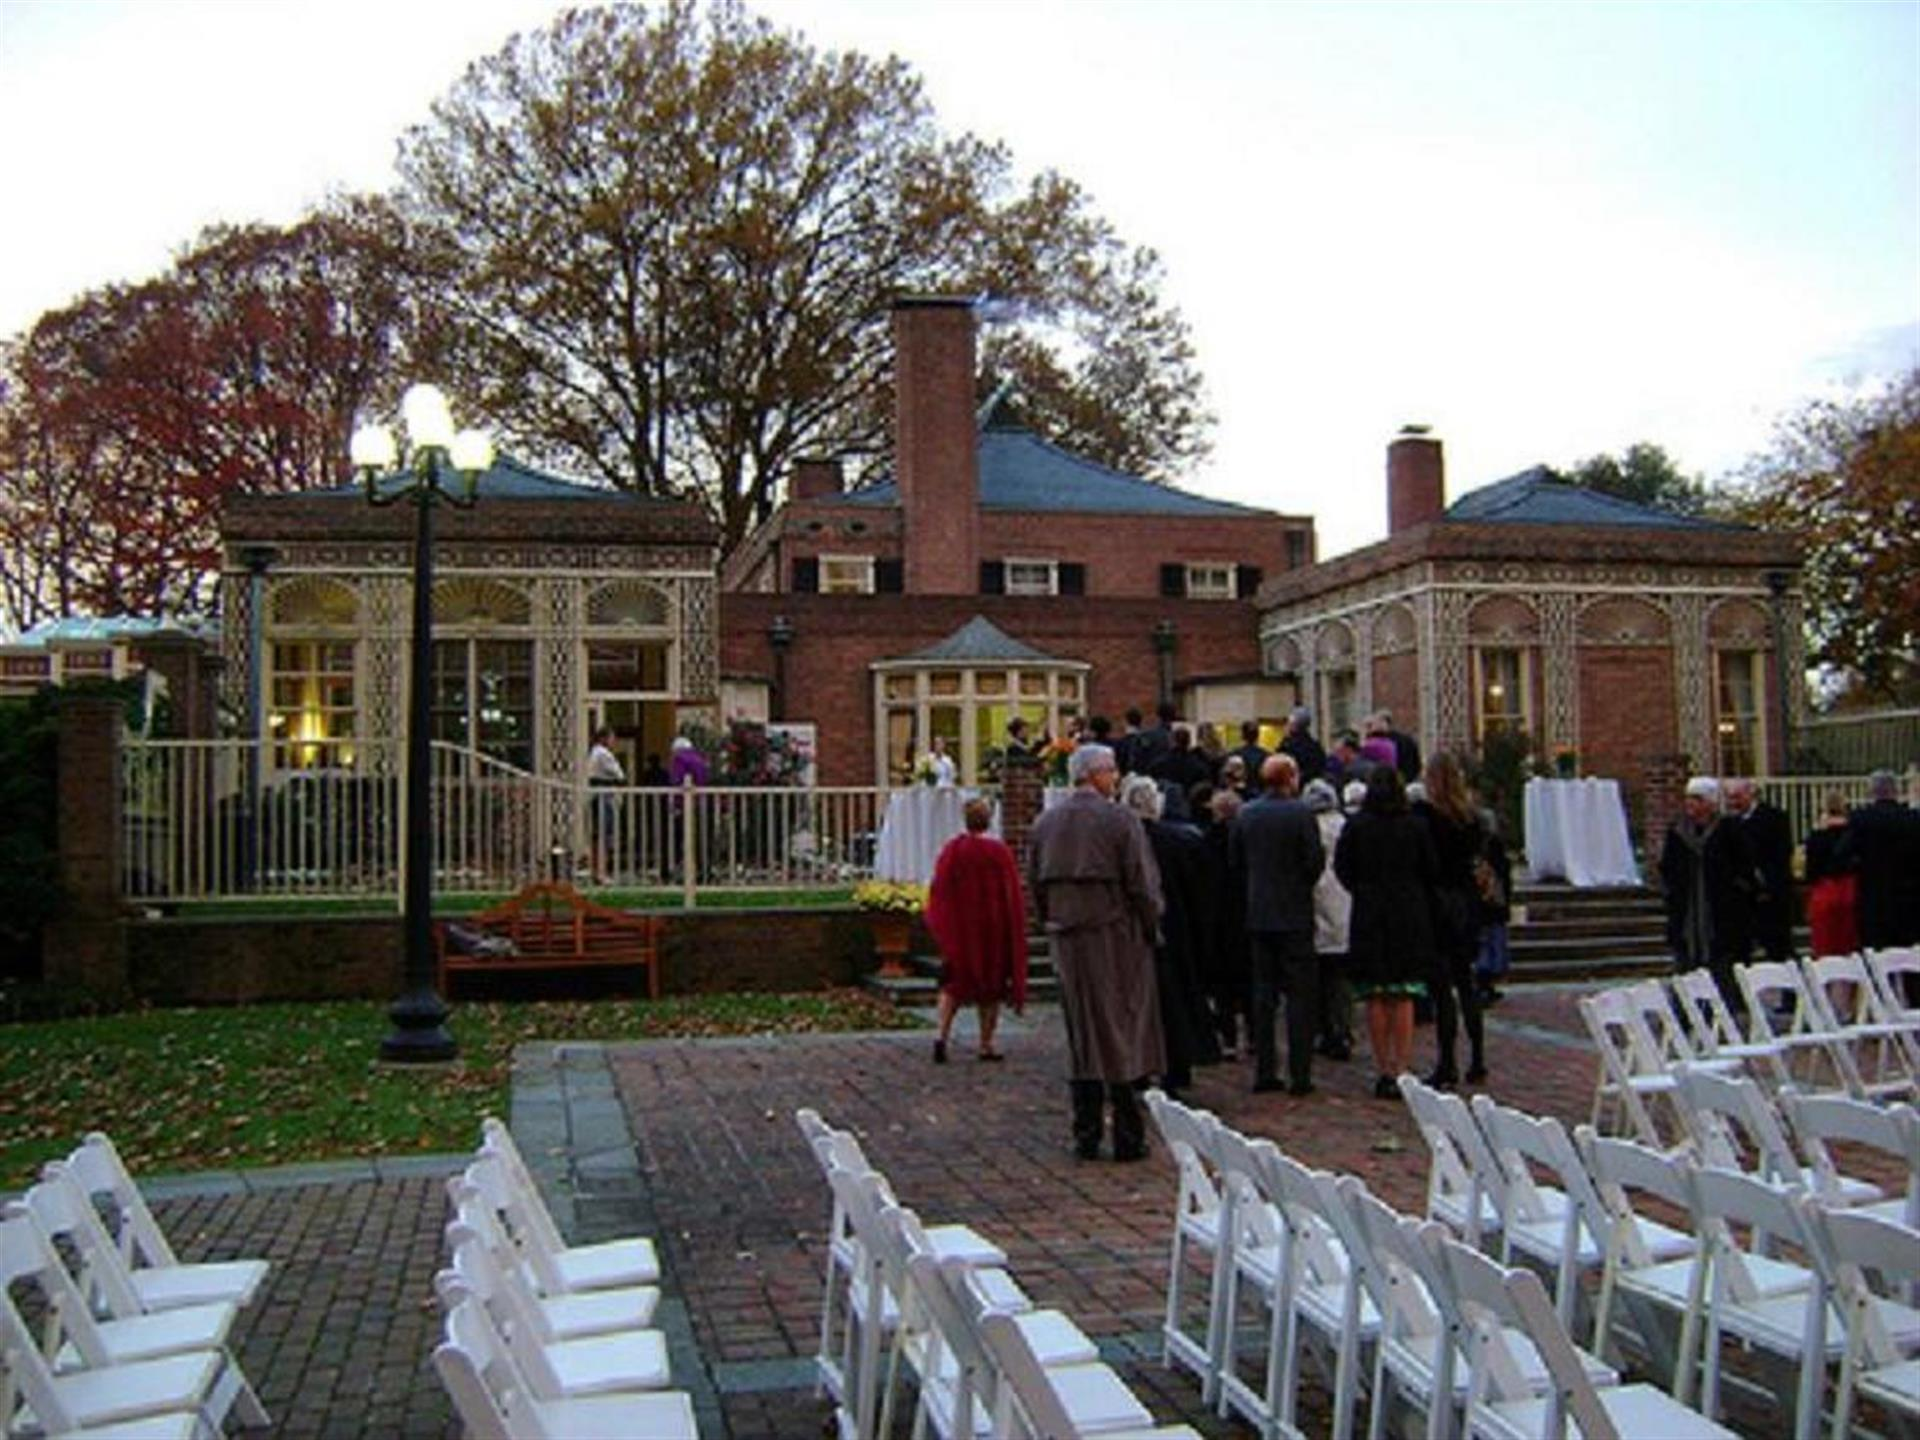 Outdoor patio area with a group of people gathered